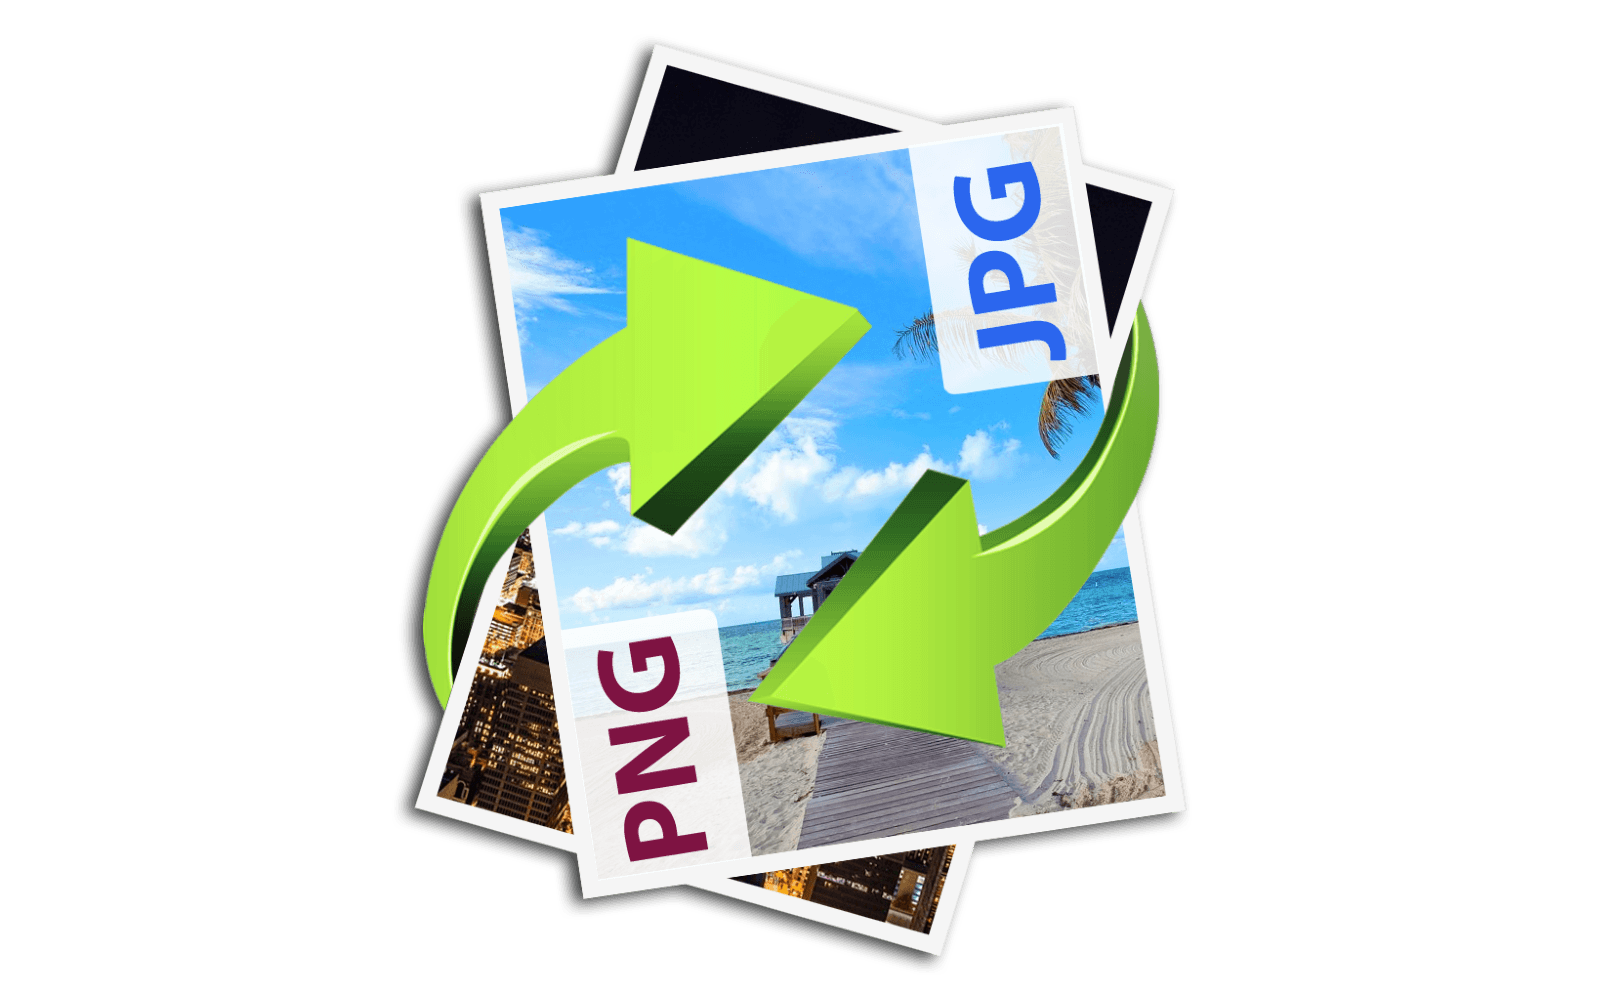 How to Convert Images on Mac OS X